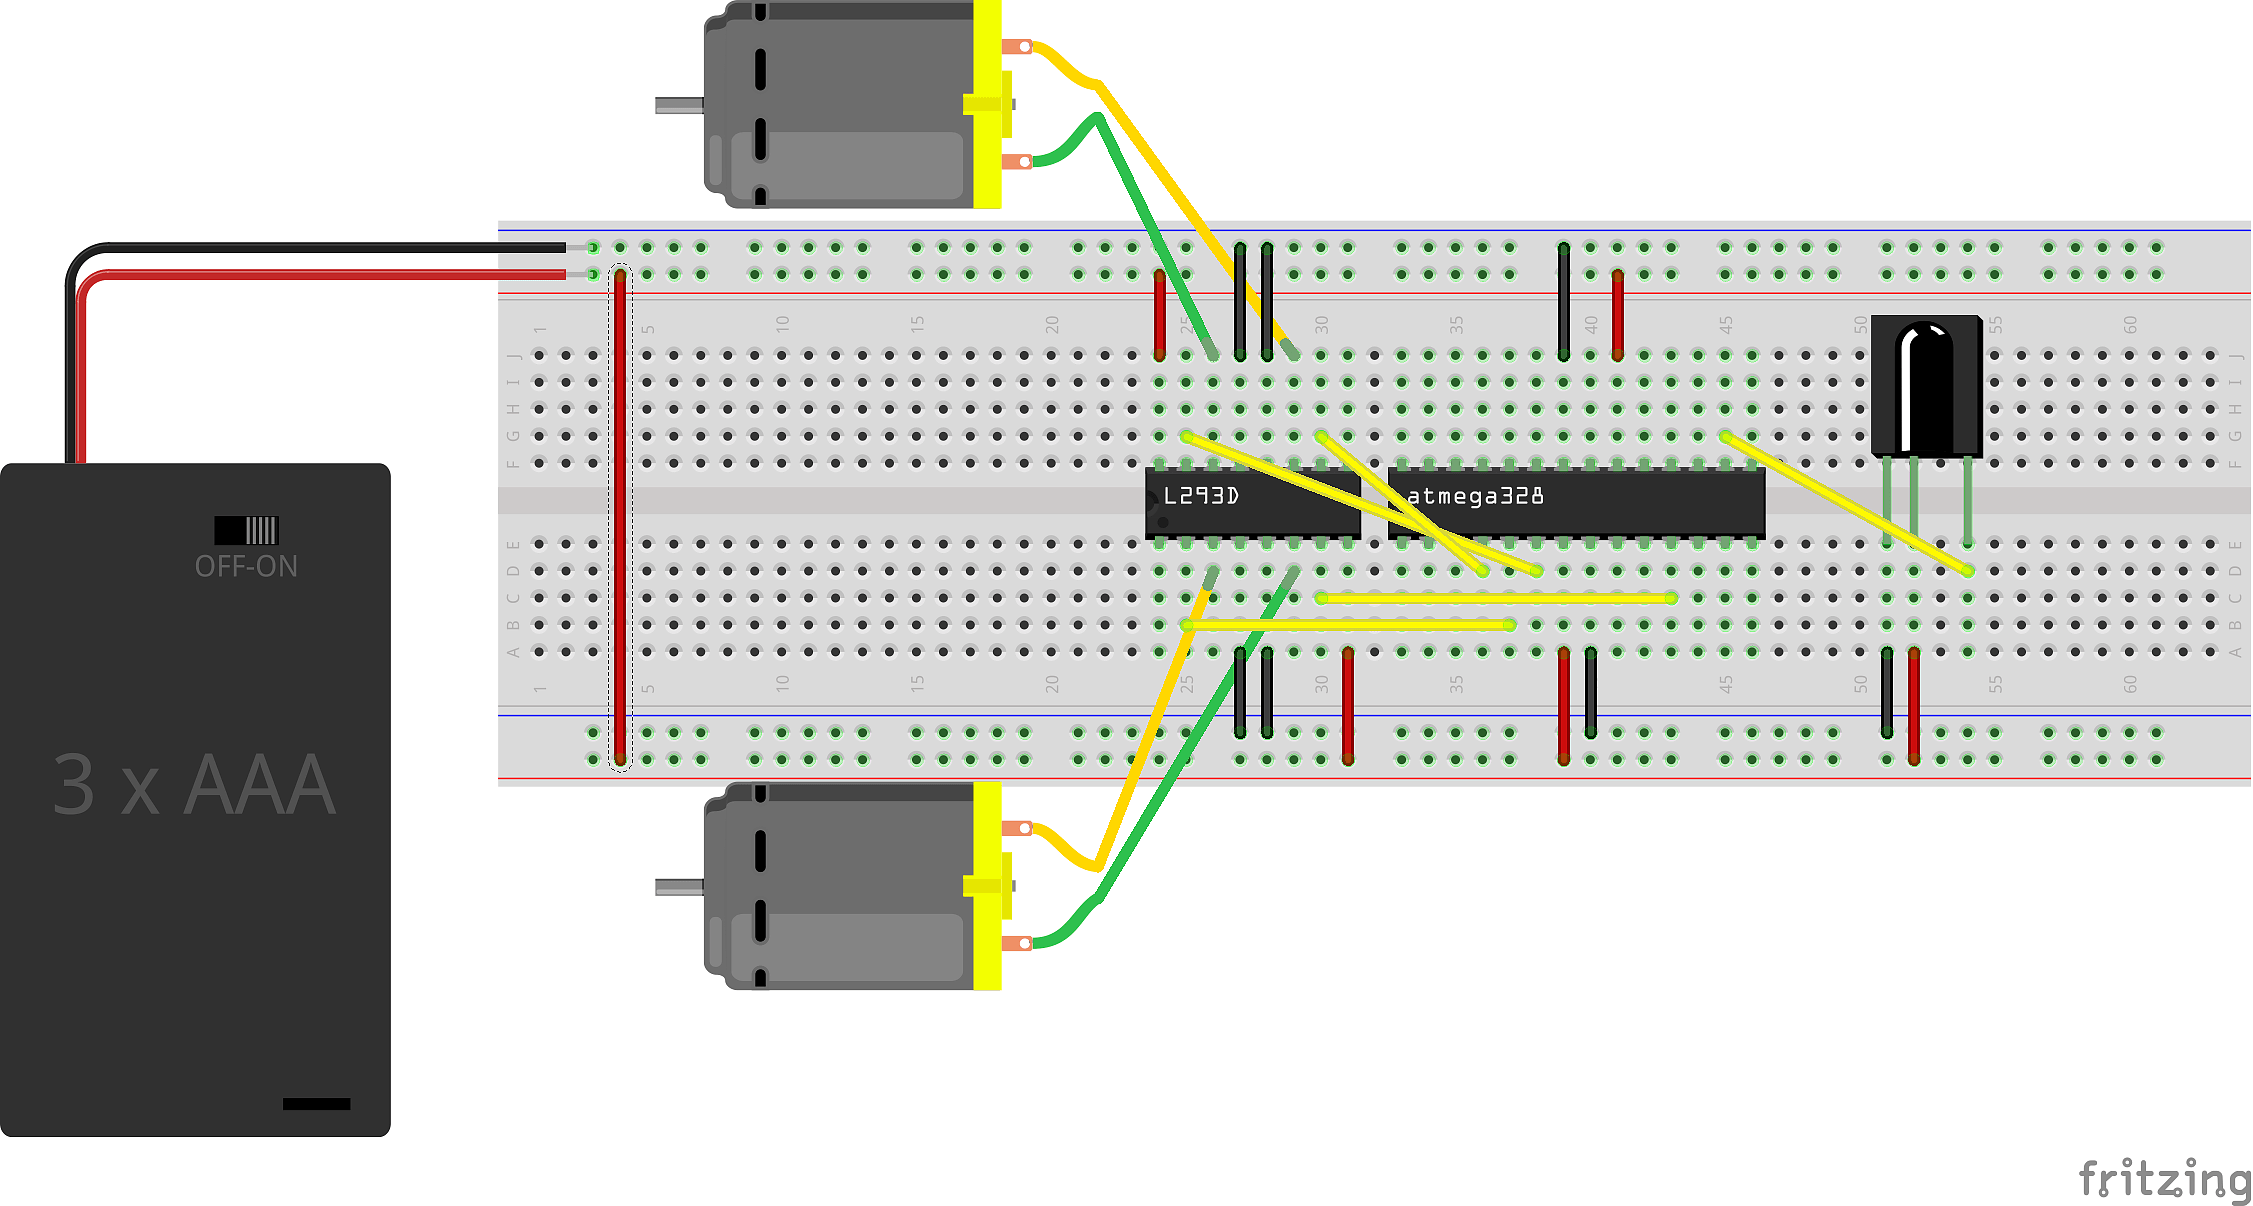 Strap A Robot To Your Face Expressions Are Now Controlled By How Build Electronic Candle Blow Out Schematic Move The Data Connections That Currently Attached Arduino So They Connect Atmega328 Chip Instead Per This Diagram